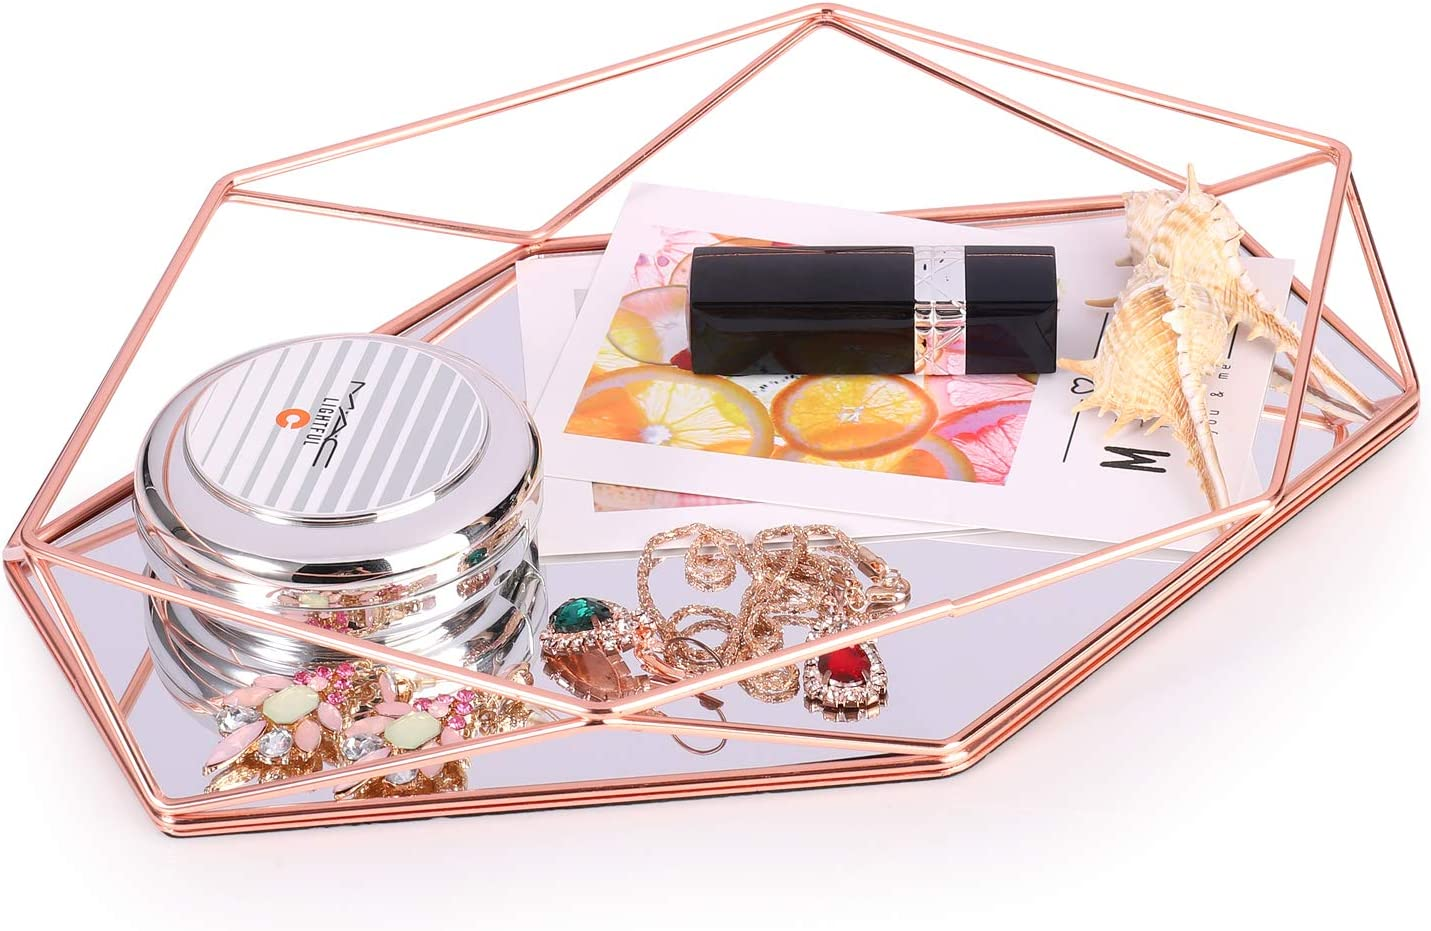 Decorative Tray Mirrored Metal Ornate Vanity Storage Organizer Countertop Tray Jewelry Cosmetic Makeup Organizer Geometric Hexagonal Decorative Desktop Tray Nordic Simple Style Rose Gold